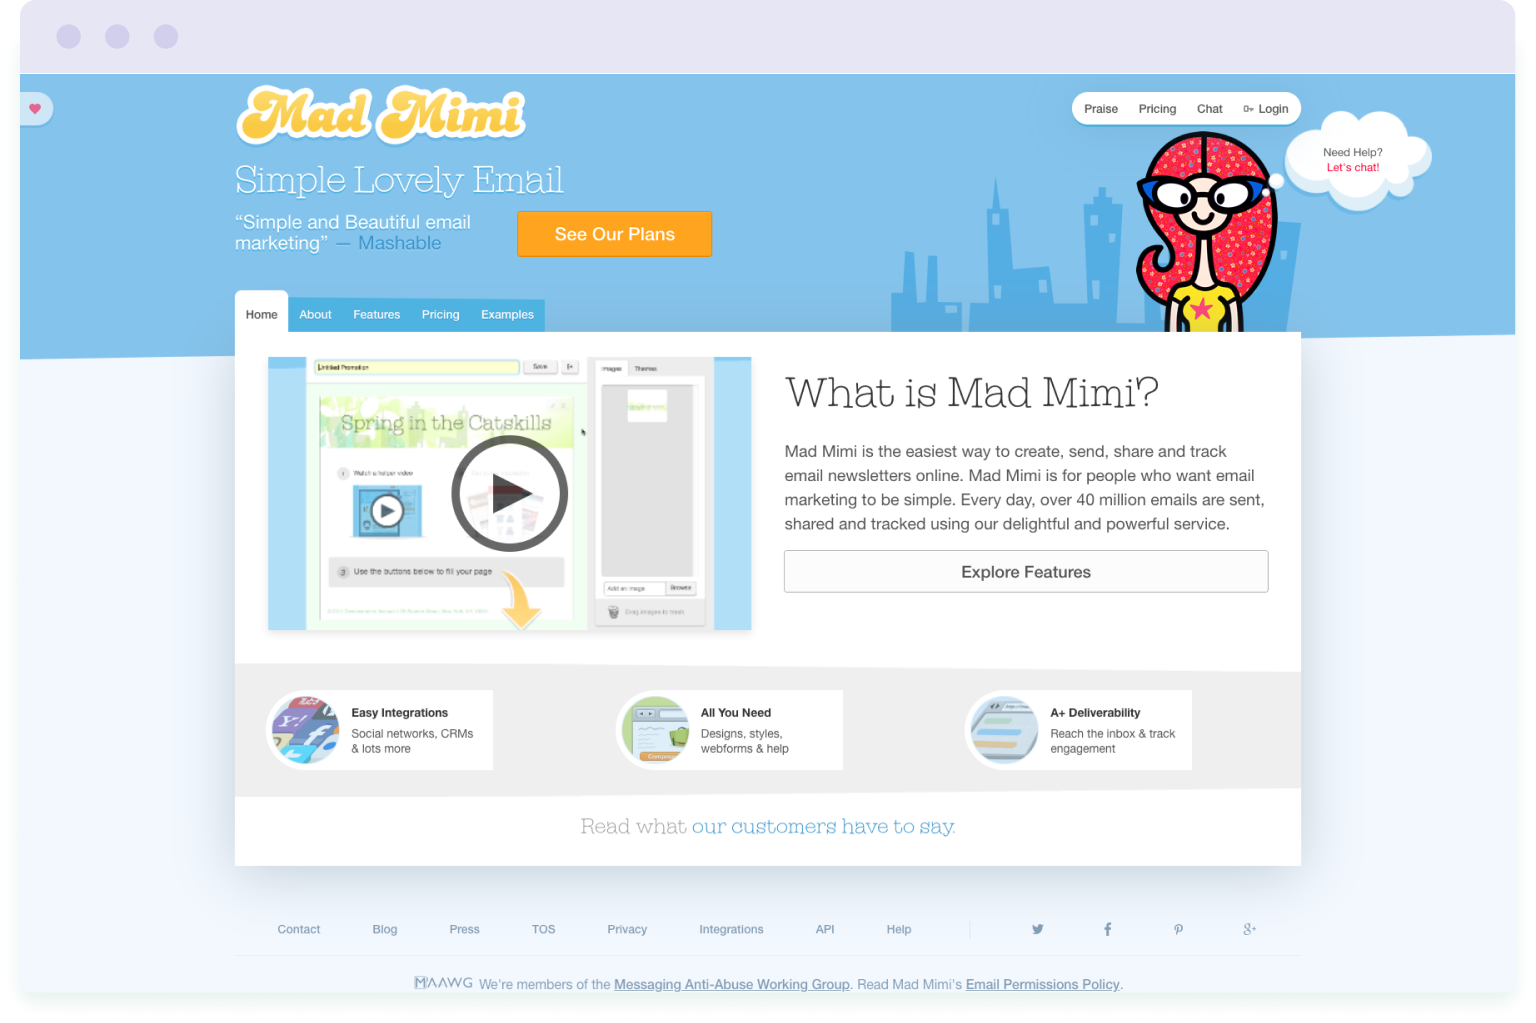 Image of the website homepage of Mad Mimi, a cheaper alternative to Mailchimp.